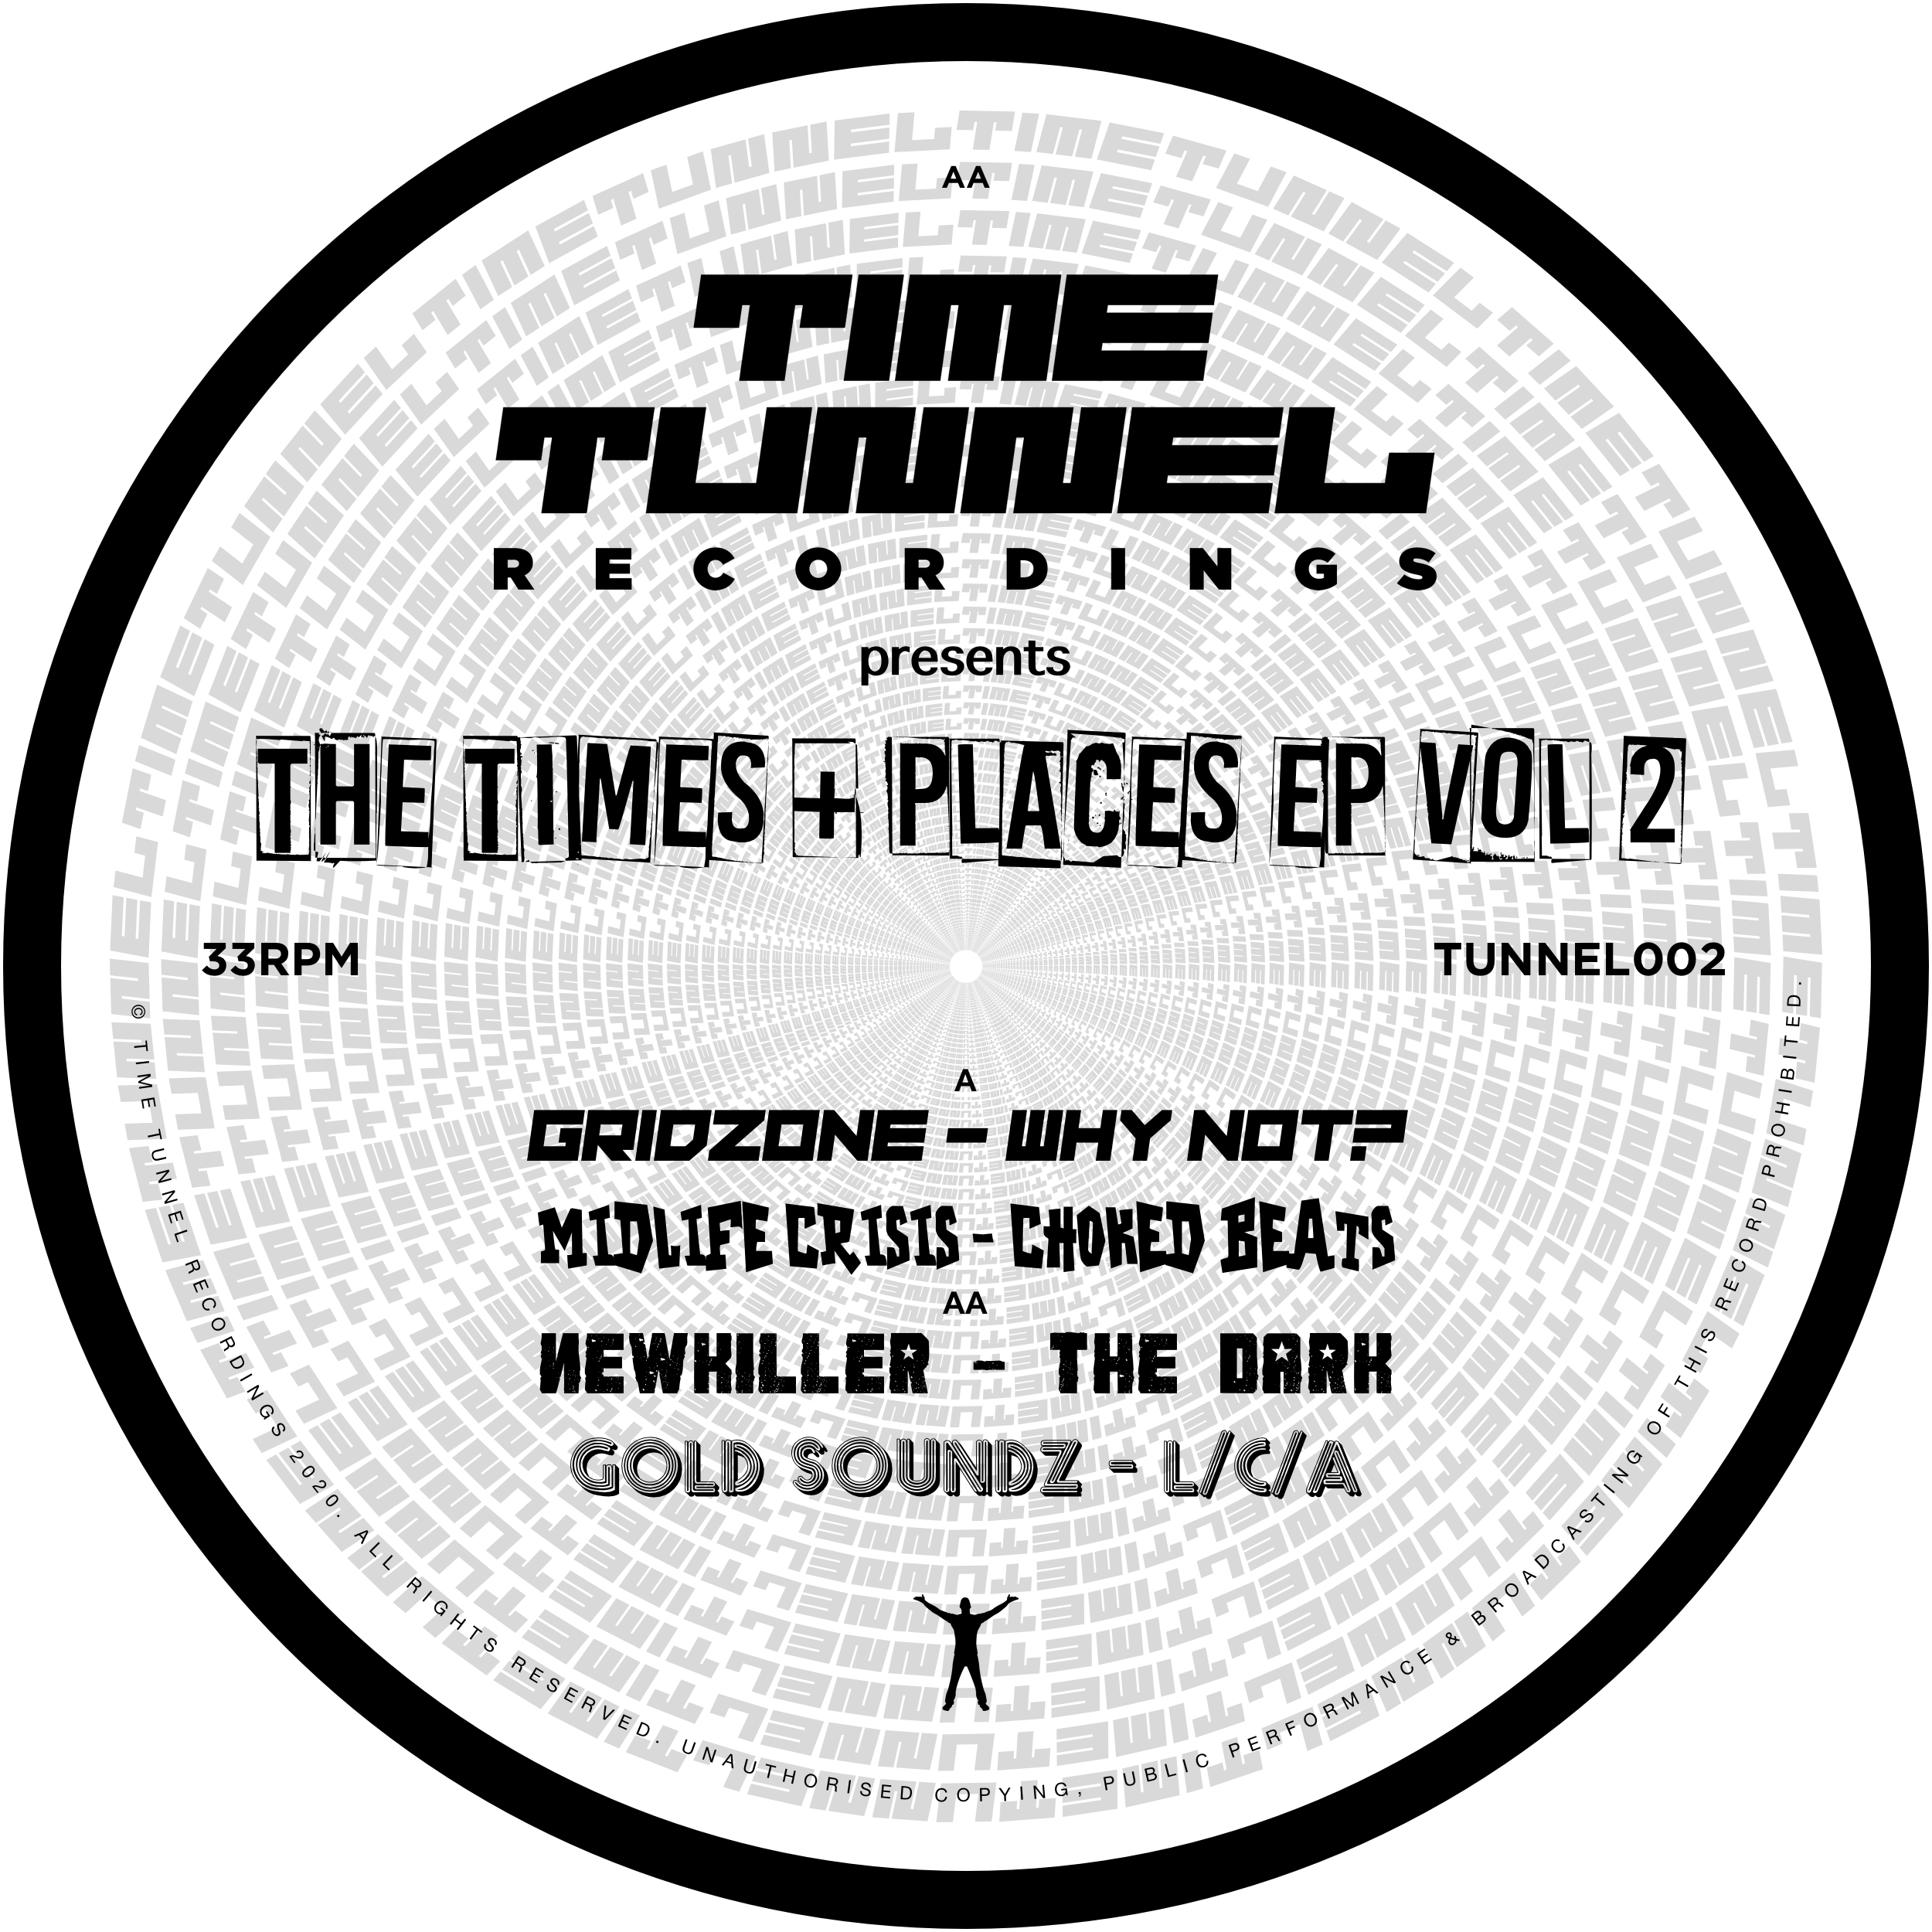 """[TUNNEL02] Various Artists - The Times & Places EP Vol. 2 (12"""" Vinyl)"""